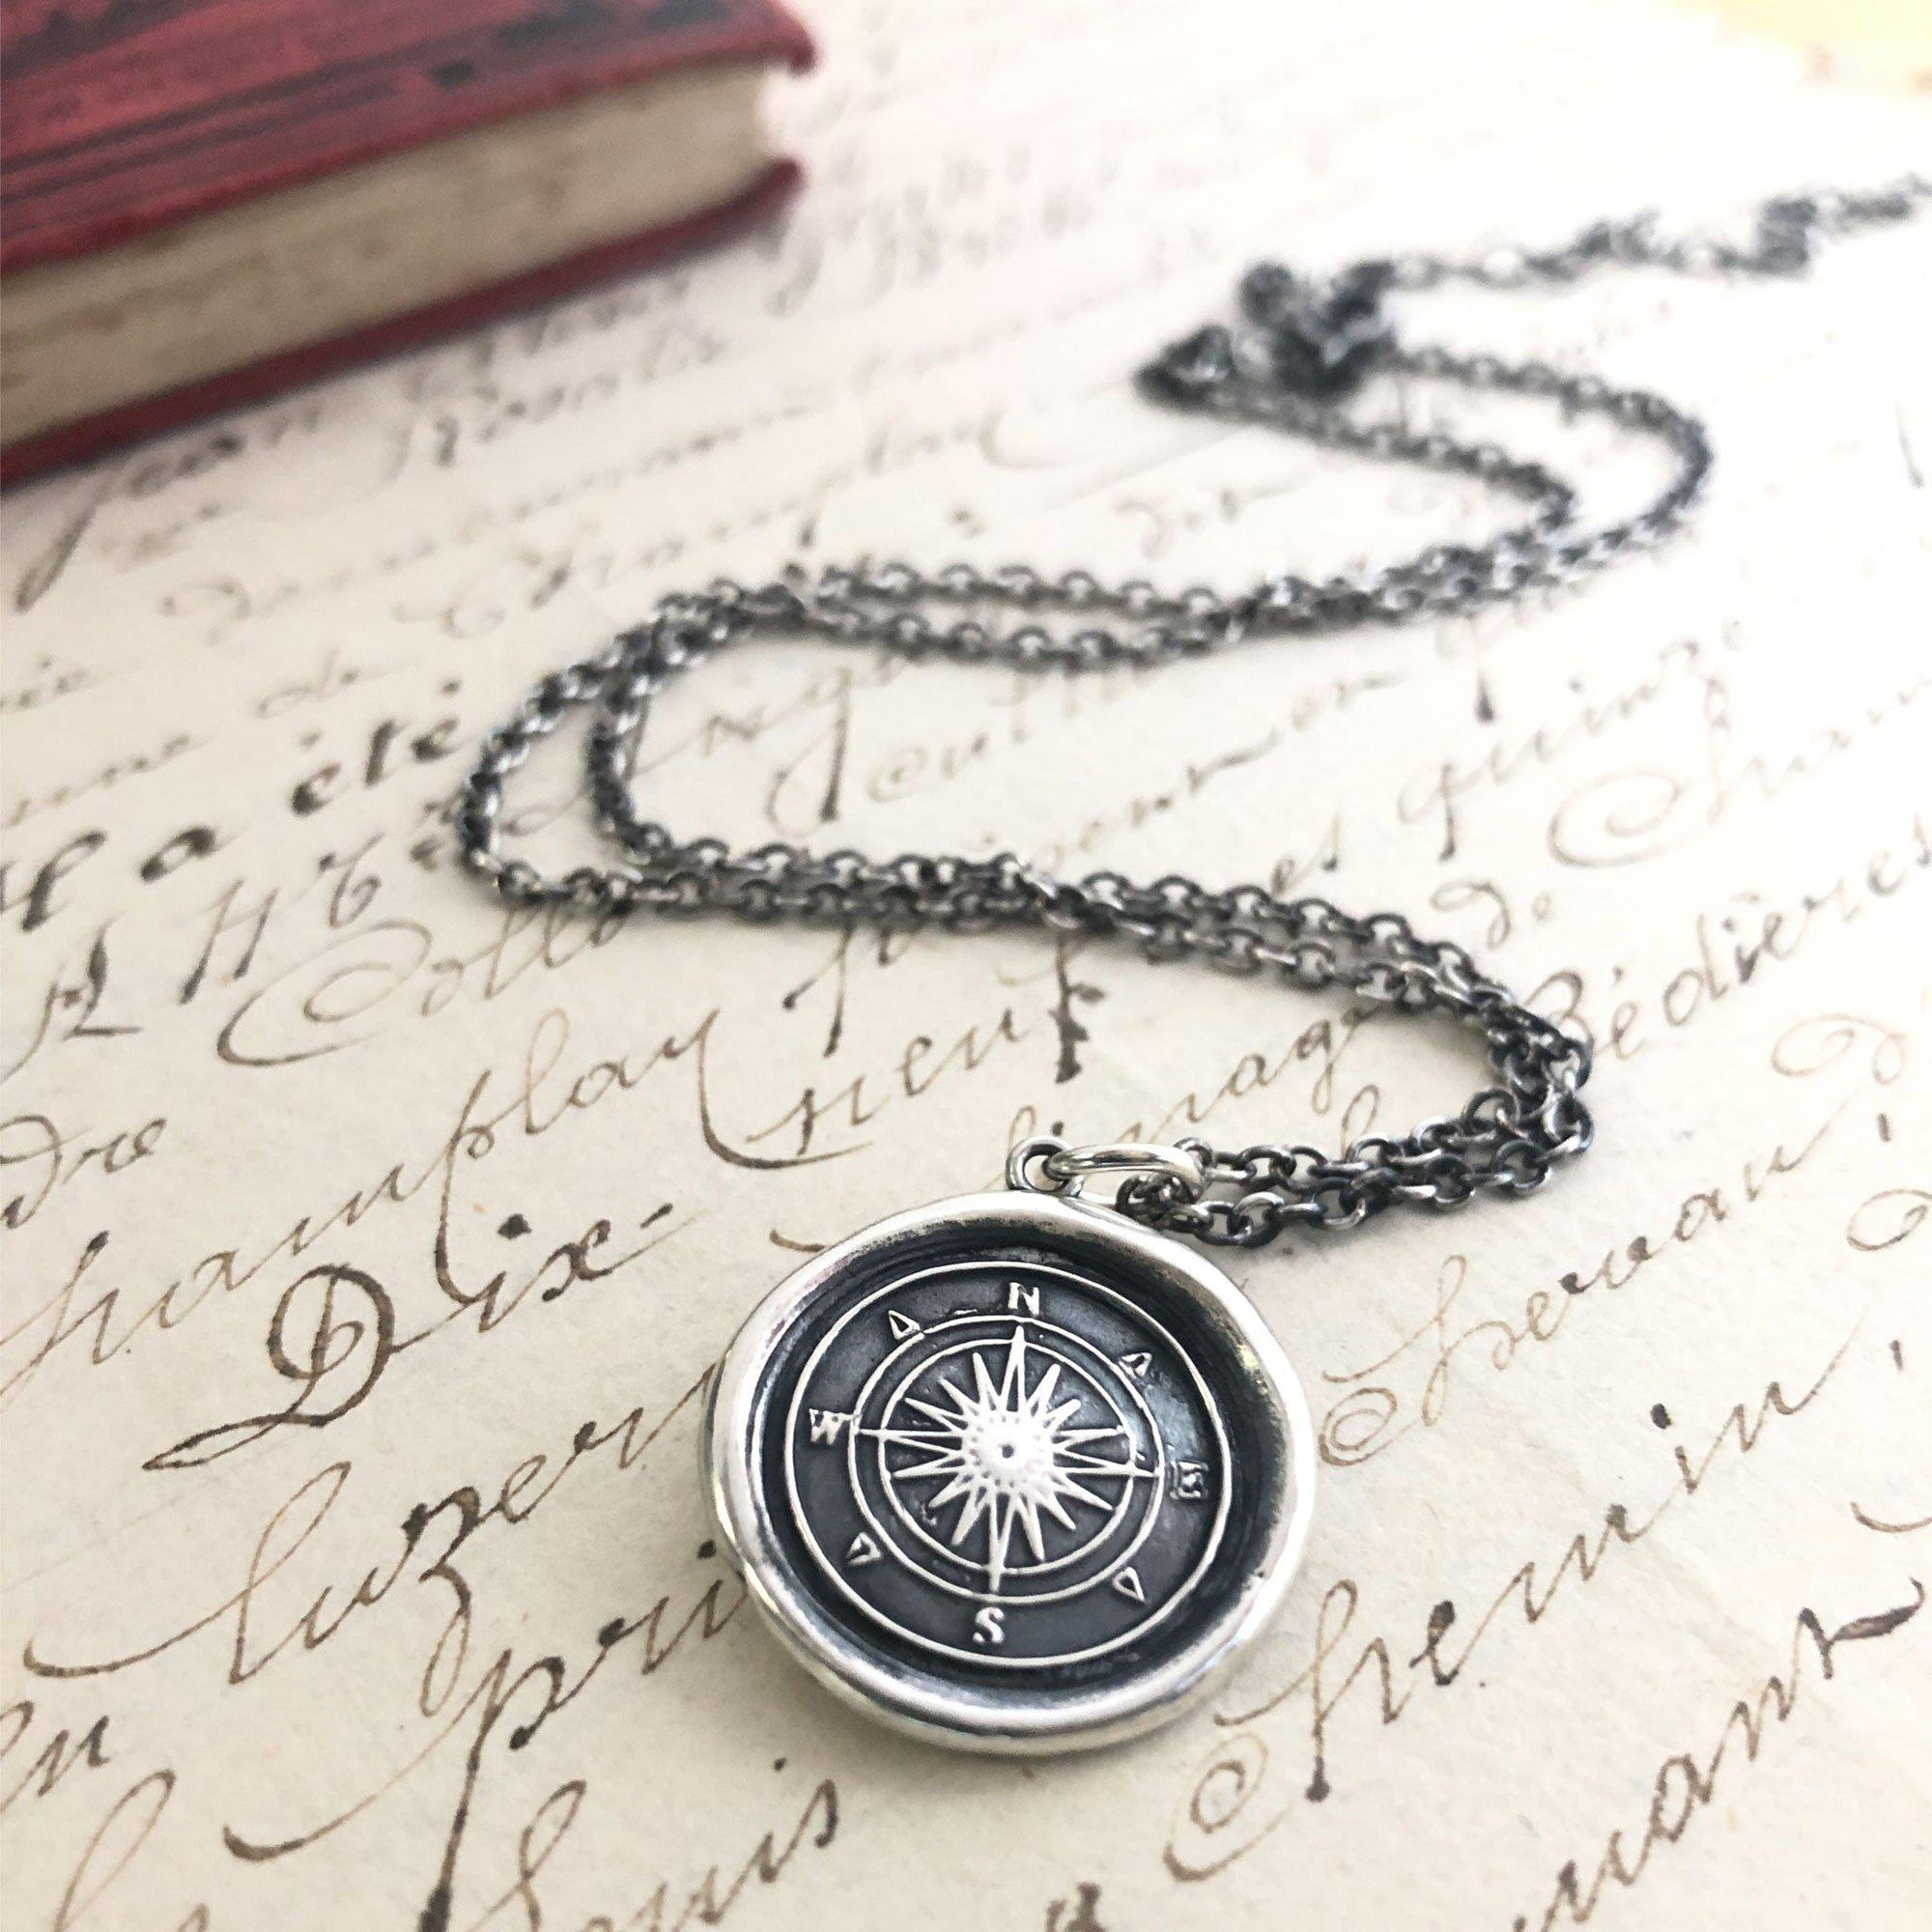 Compass Wax Seal Charm Pendant - Guidance & Direction